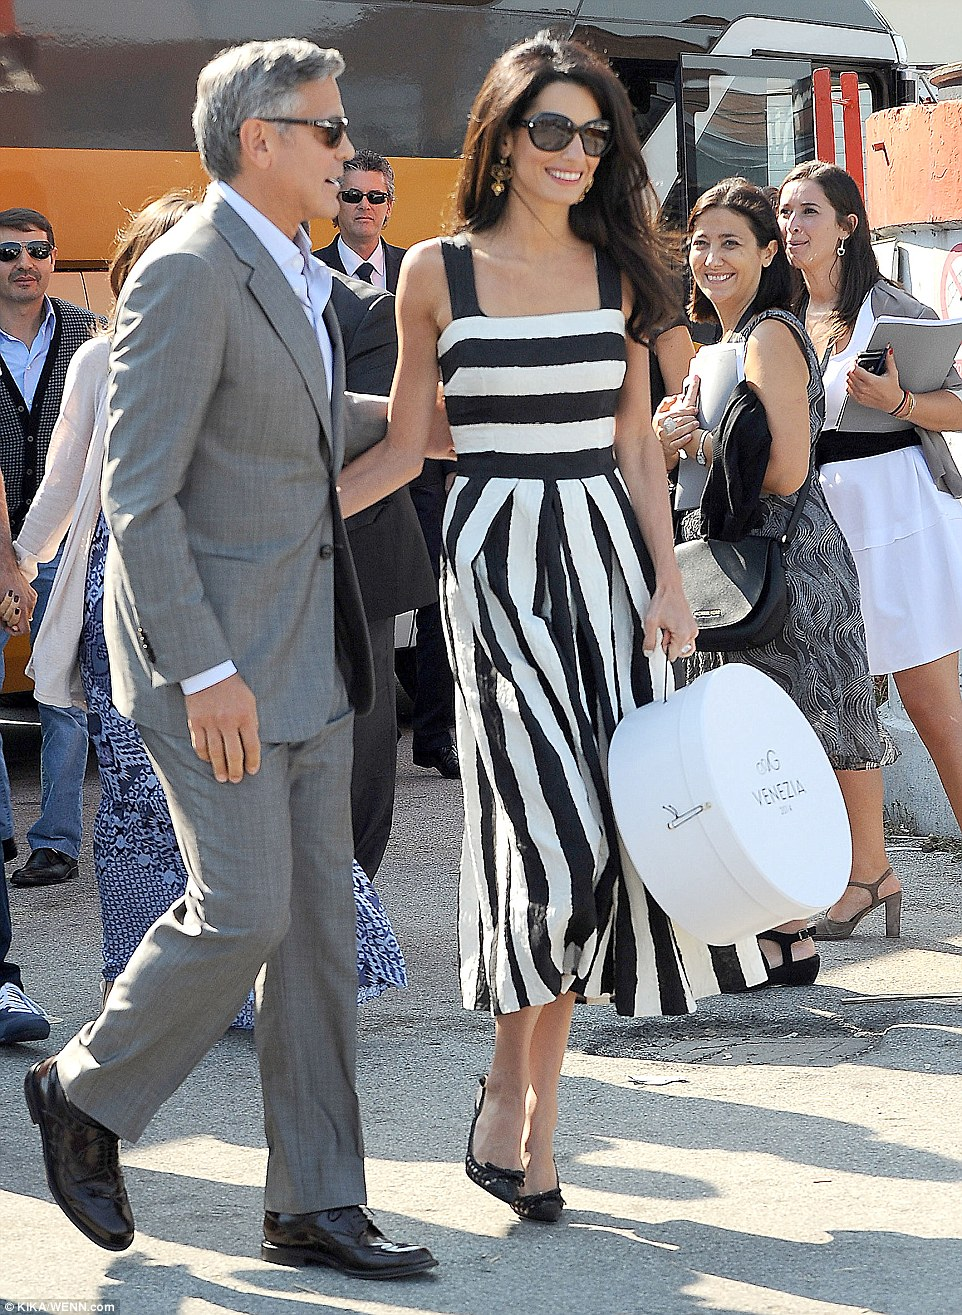 Elegant: Amal channelled vintage Hollywood glamour in a retro monochrome dress with dainty black heels and a co-ordinating hat box